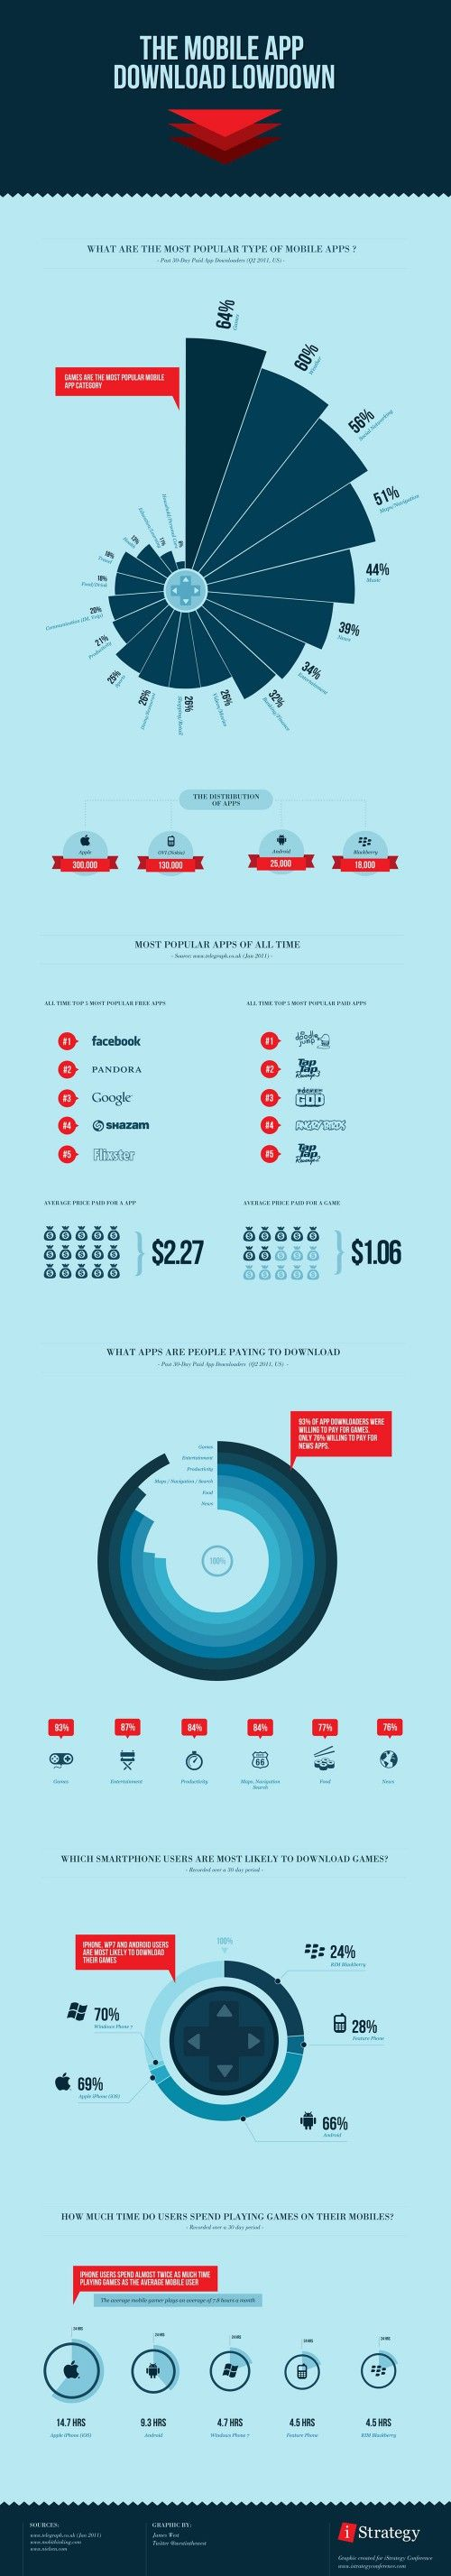 The mobile app download lowdown infography ----BTW, Please Visit ...